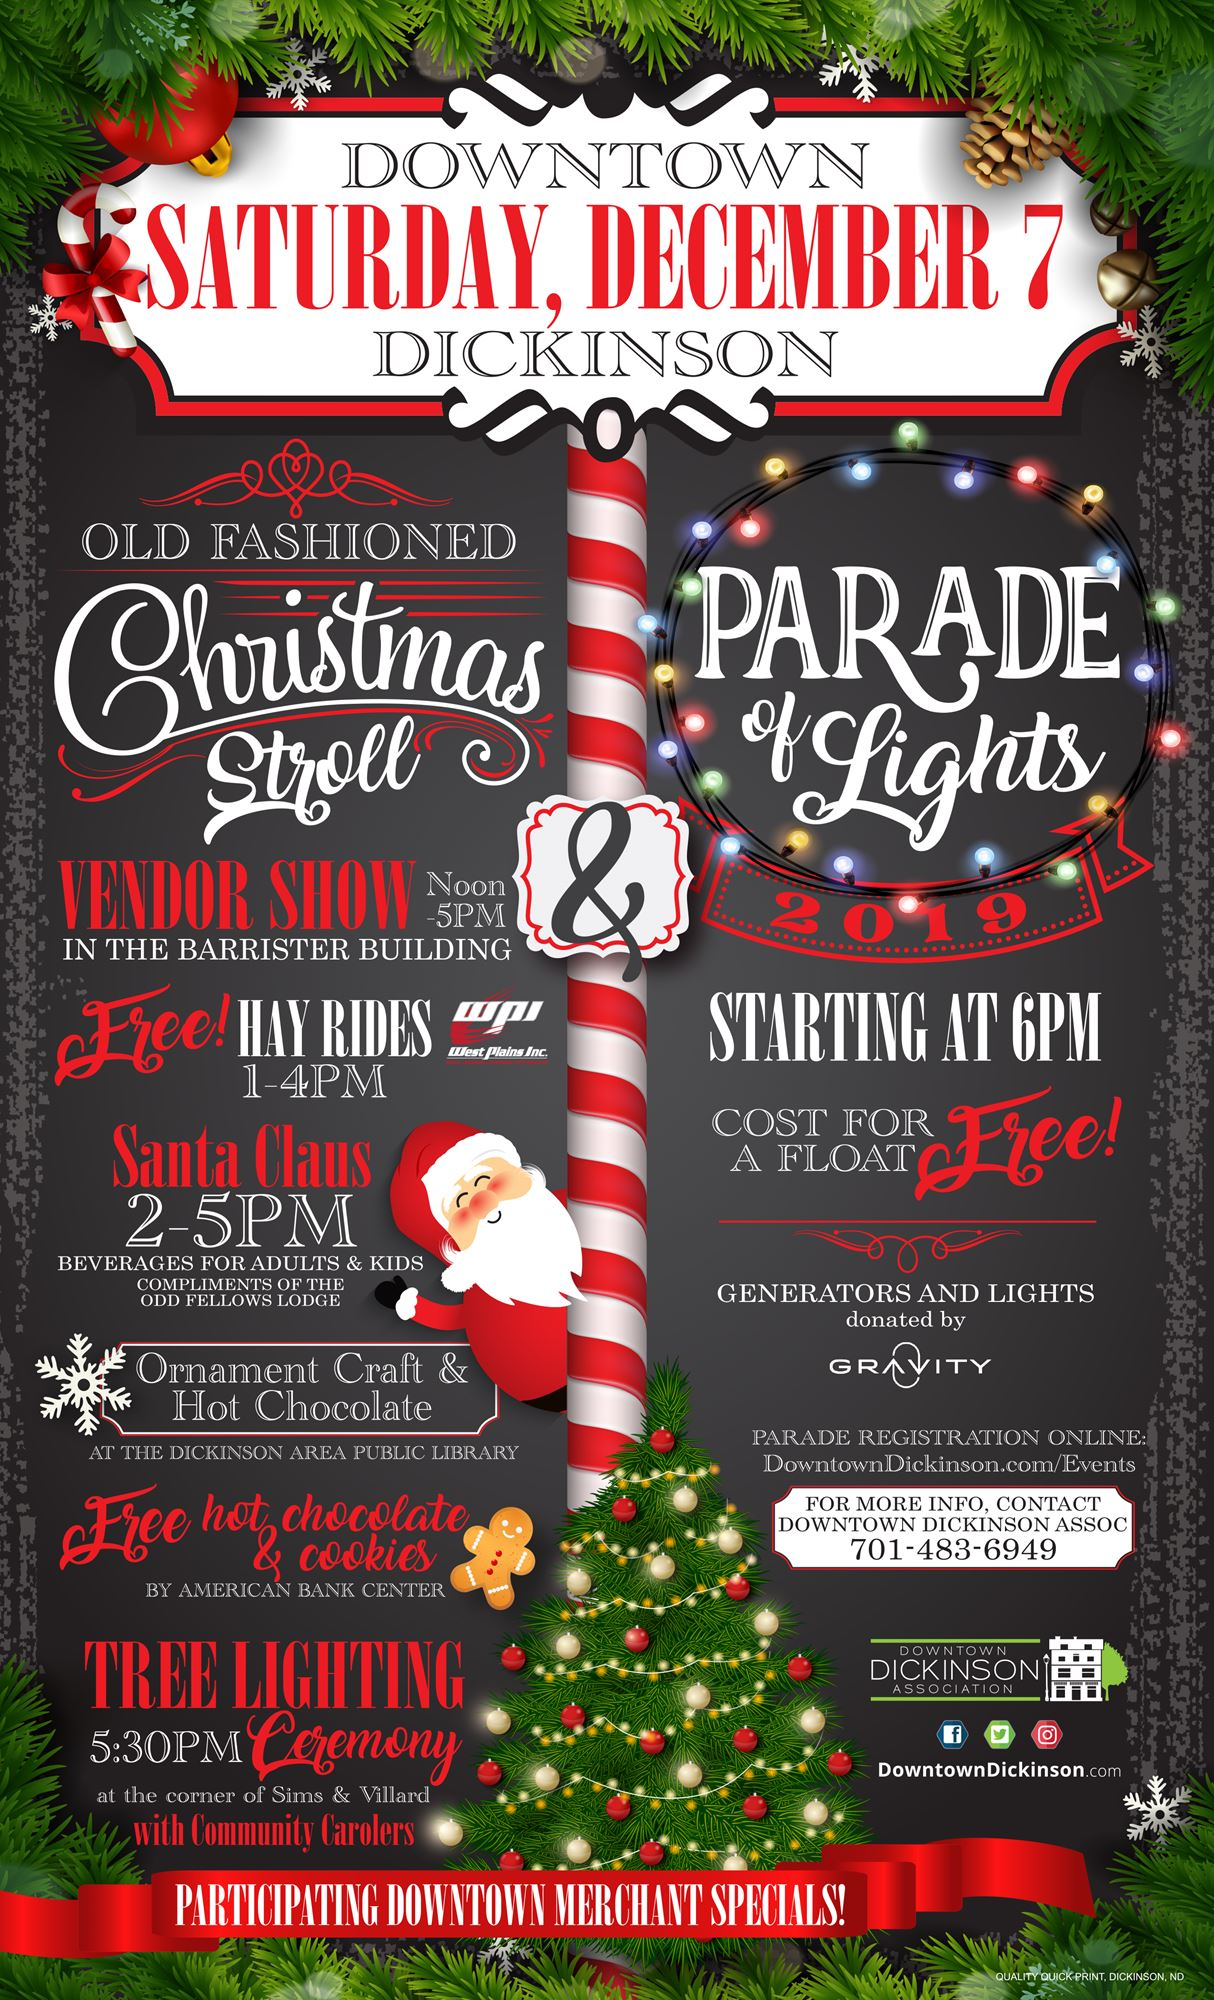 Old Fashioned Christmas Stroll & Parade of Lights - Dec. 7, 2019 - Dickinson, ND